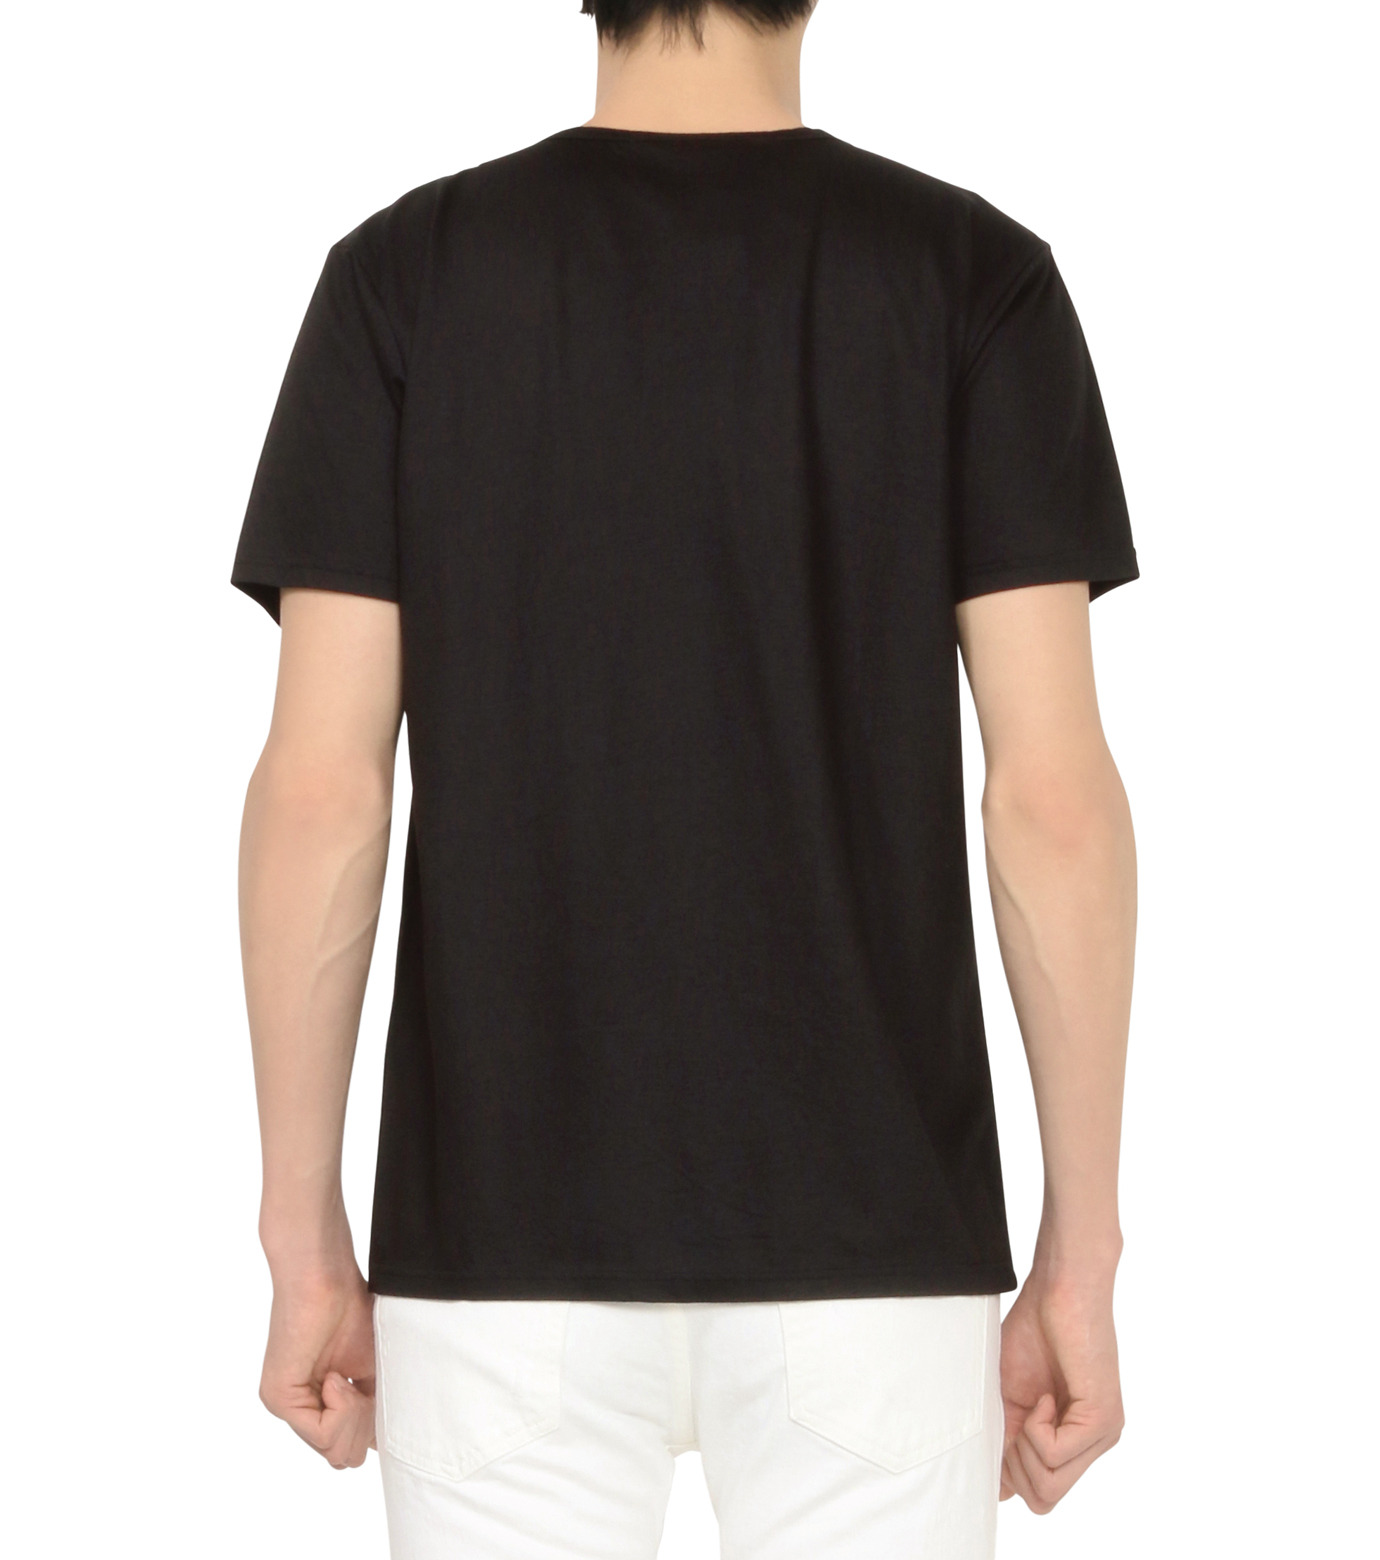 HL HEDDIE LOVU(エイチエル・エディールーヴ)のNOTHING pt TEE-BLACK(カットソー/cut and sewn)-18S92011-13 拡大詳細画像3